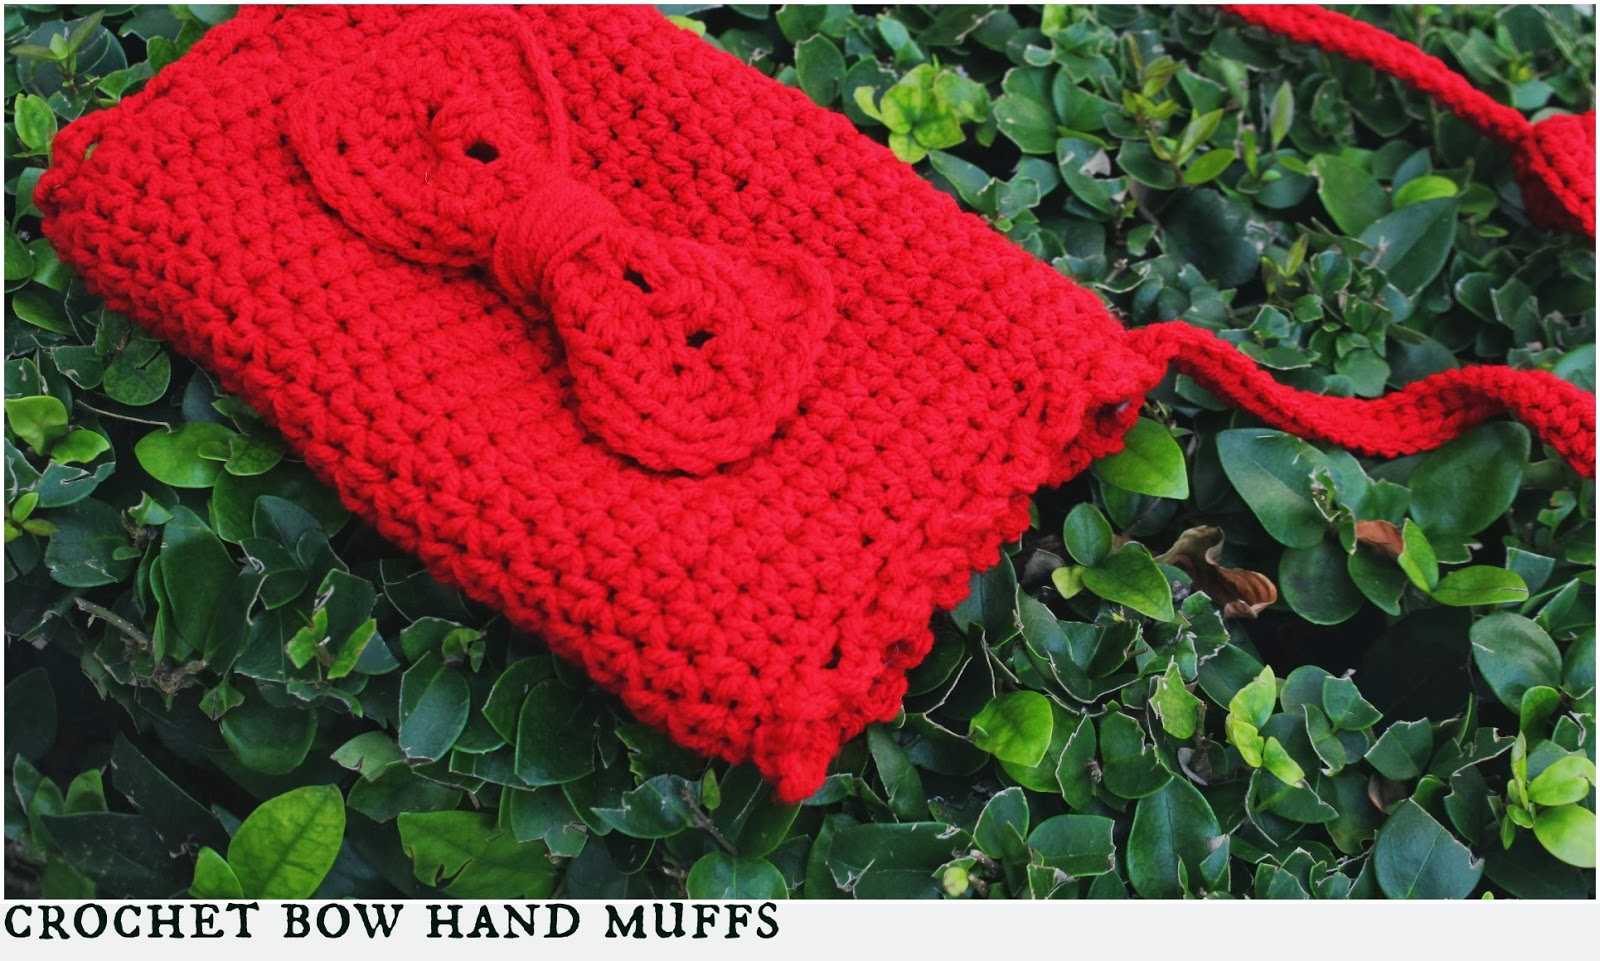 the dream crochet blog.: DIY: Crochet Bow Hand Muffs